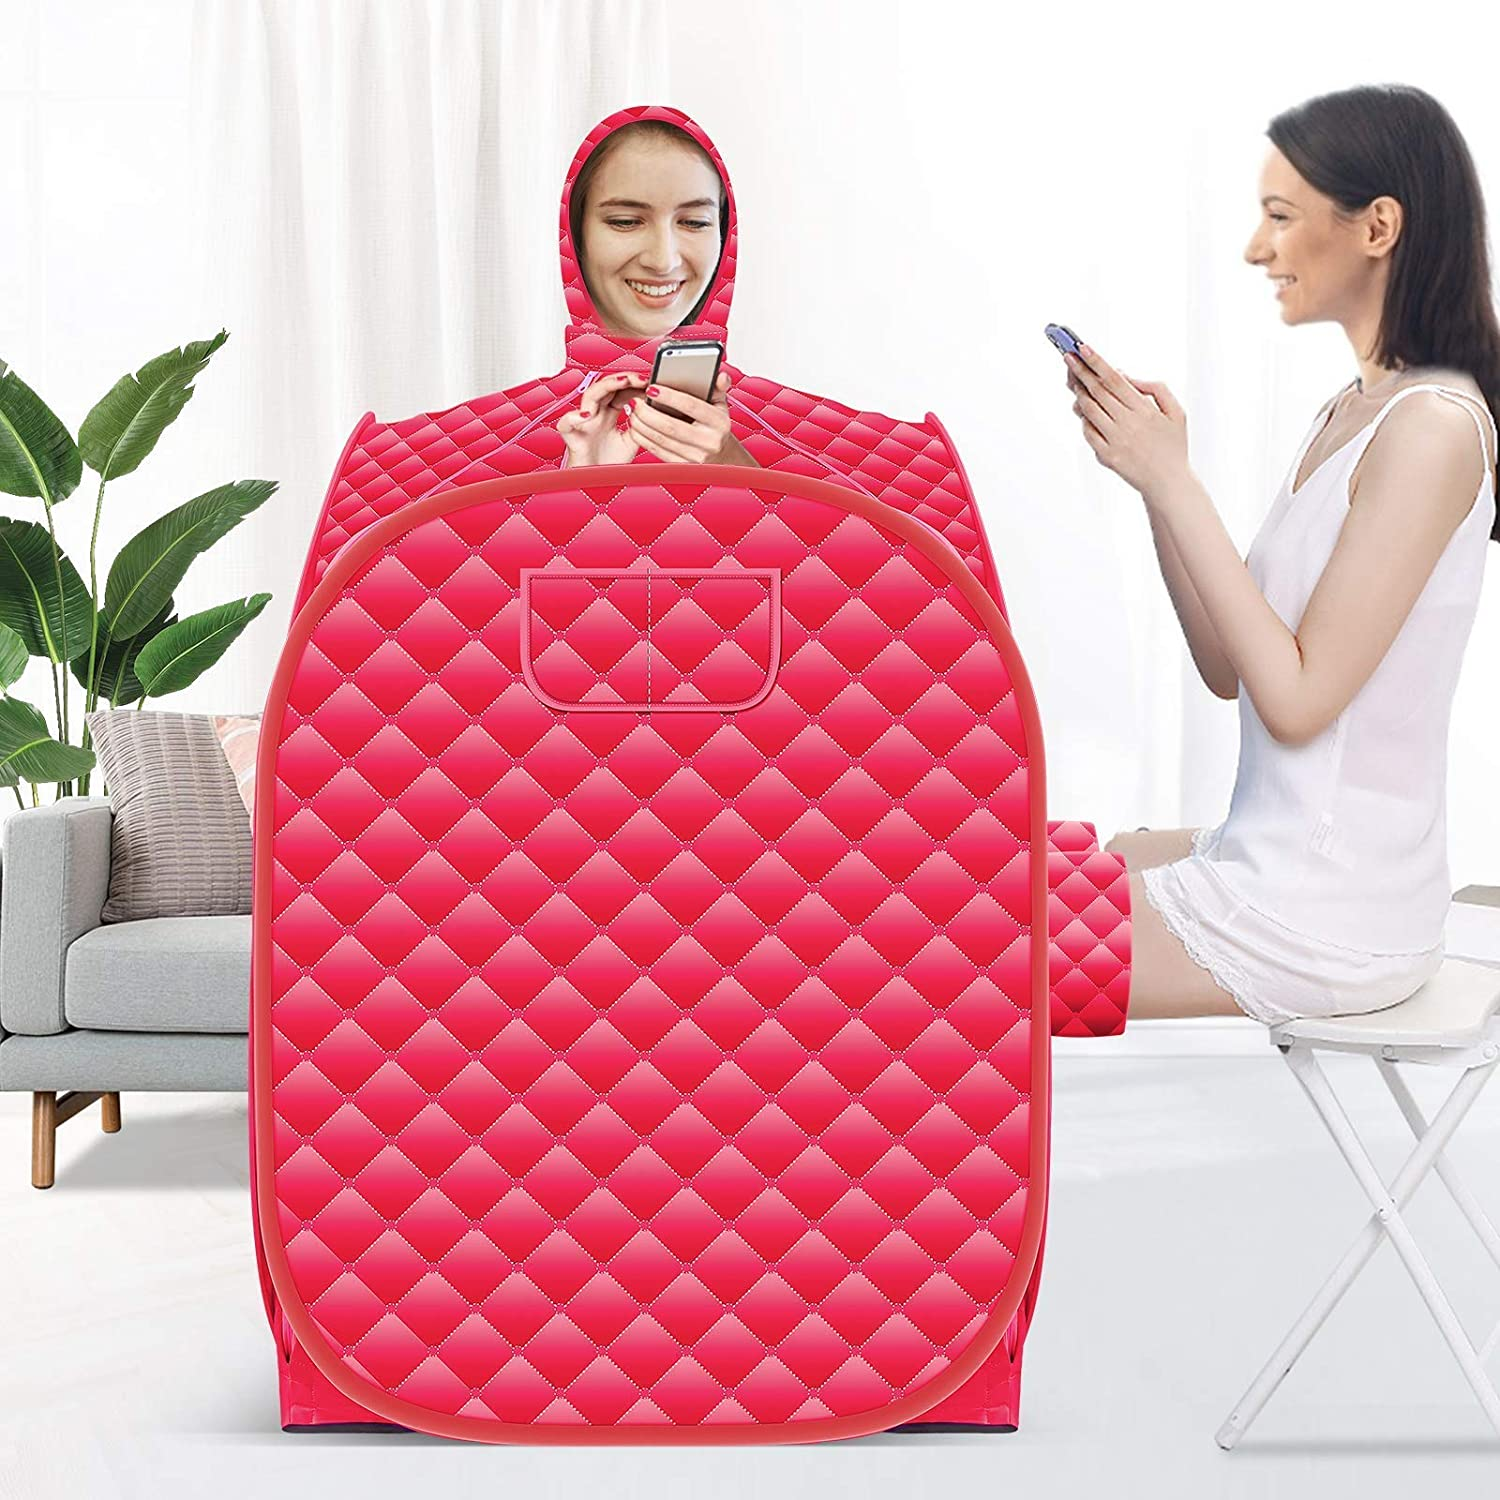 Kacsoo Steam Pot at Home Sauna with Remote Control, 2.6L Steamer with Folding Chair, 808098cm Increase Steamer, Lightweight Tent, One Person Full Body Spa for Weight Loss Detox Therapy (Red)